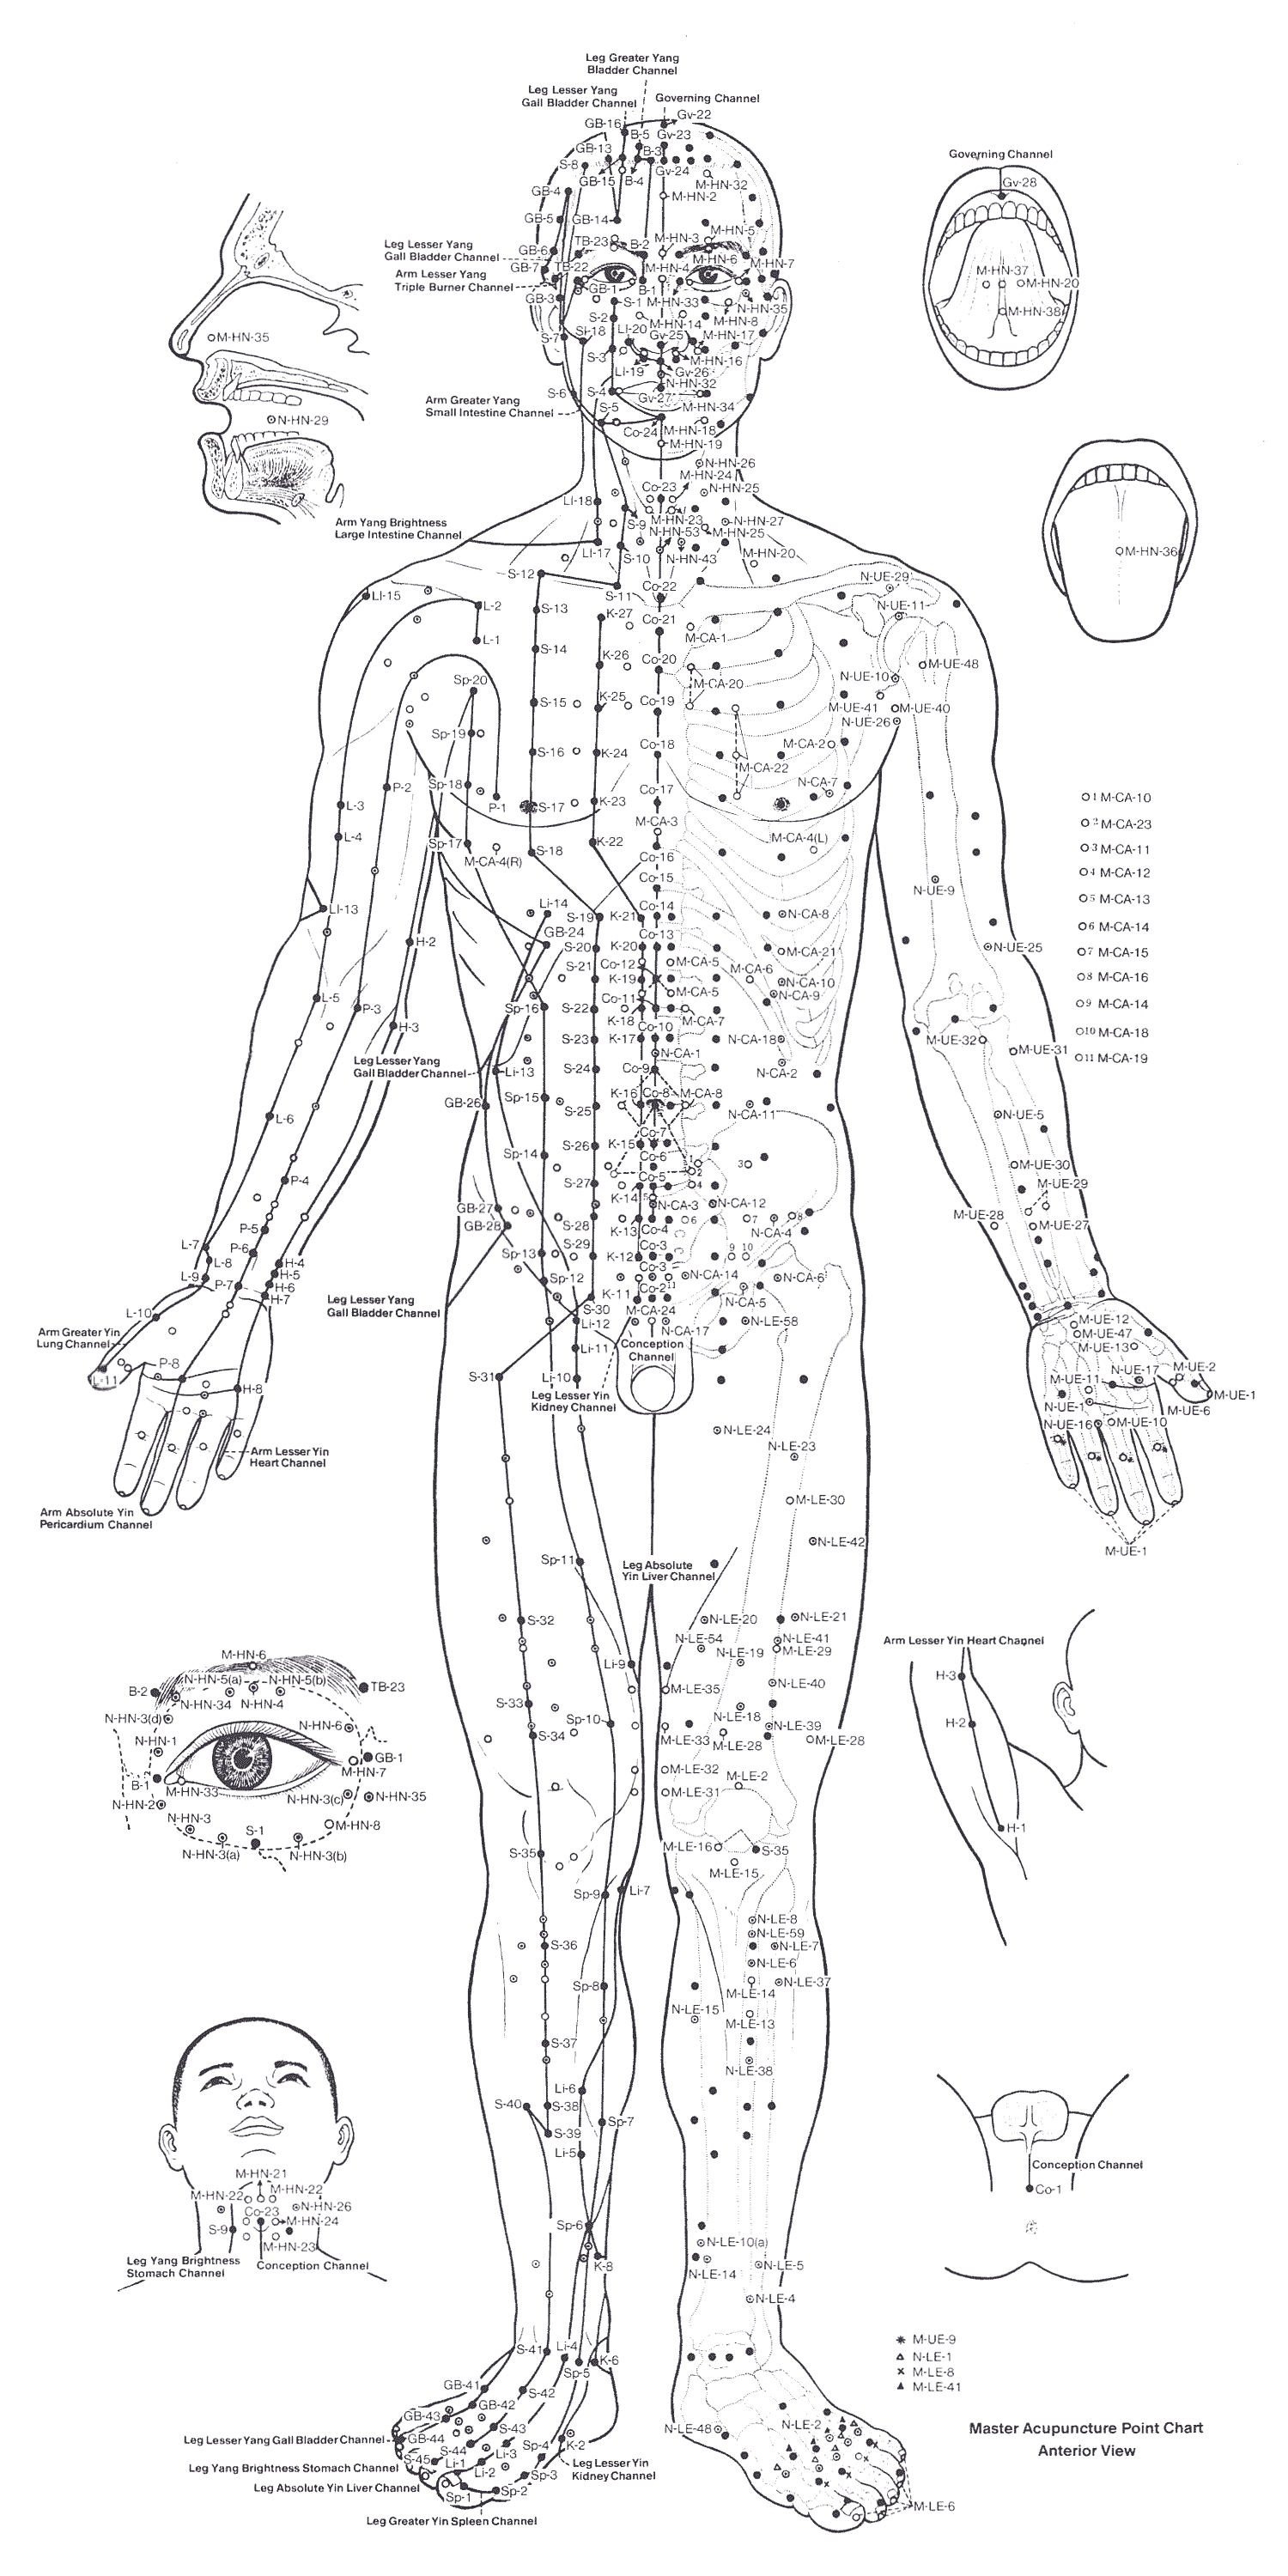 Acupuncture Points Chart Front